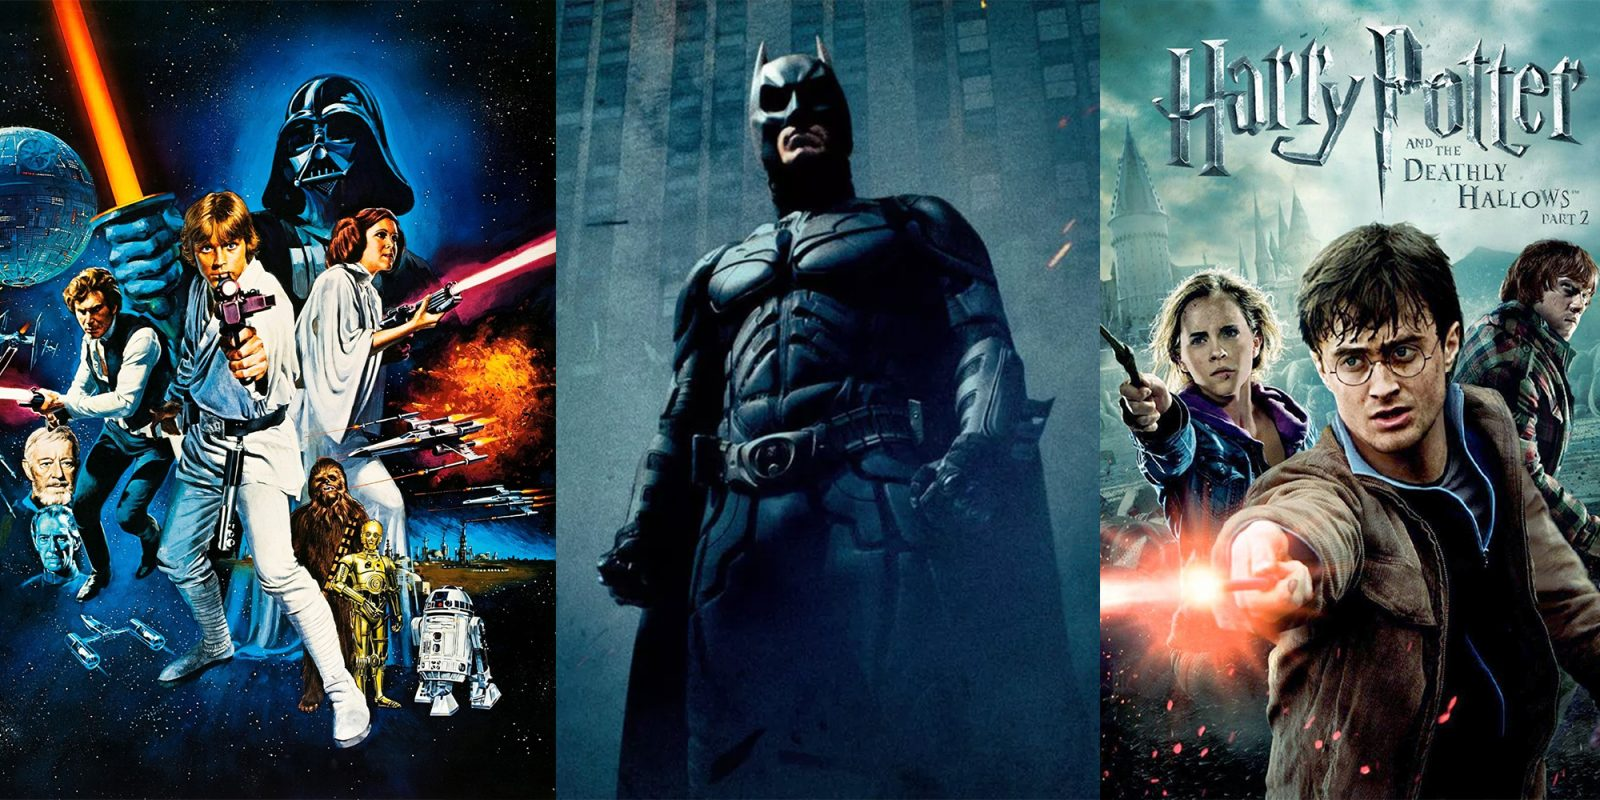 Apple launches huge movie bundle sale: Star Wars, Dark Knight, Harry Potter, more from $5